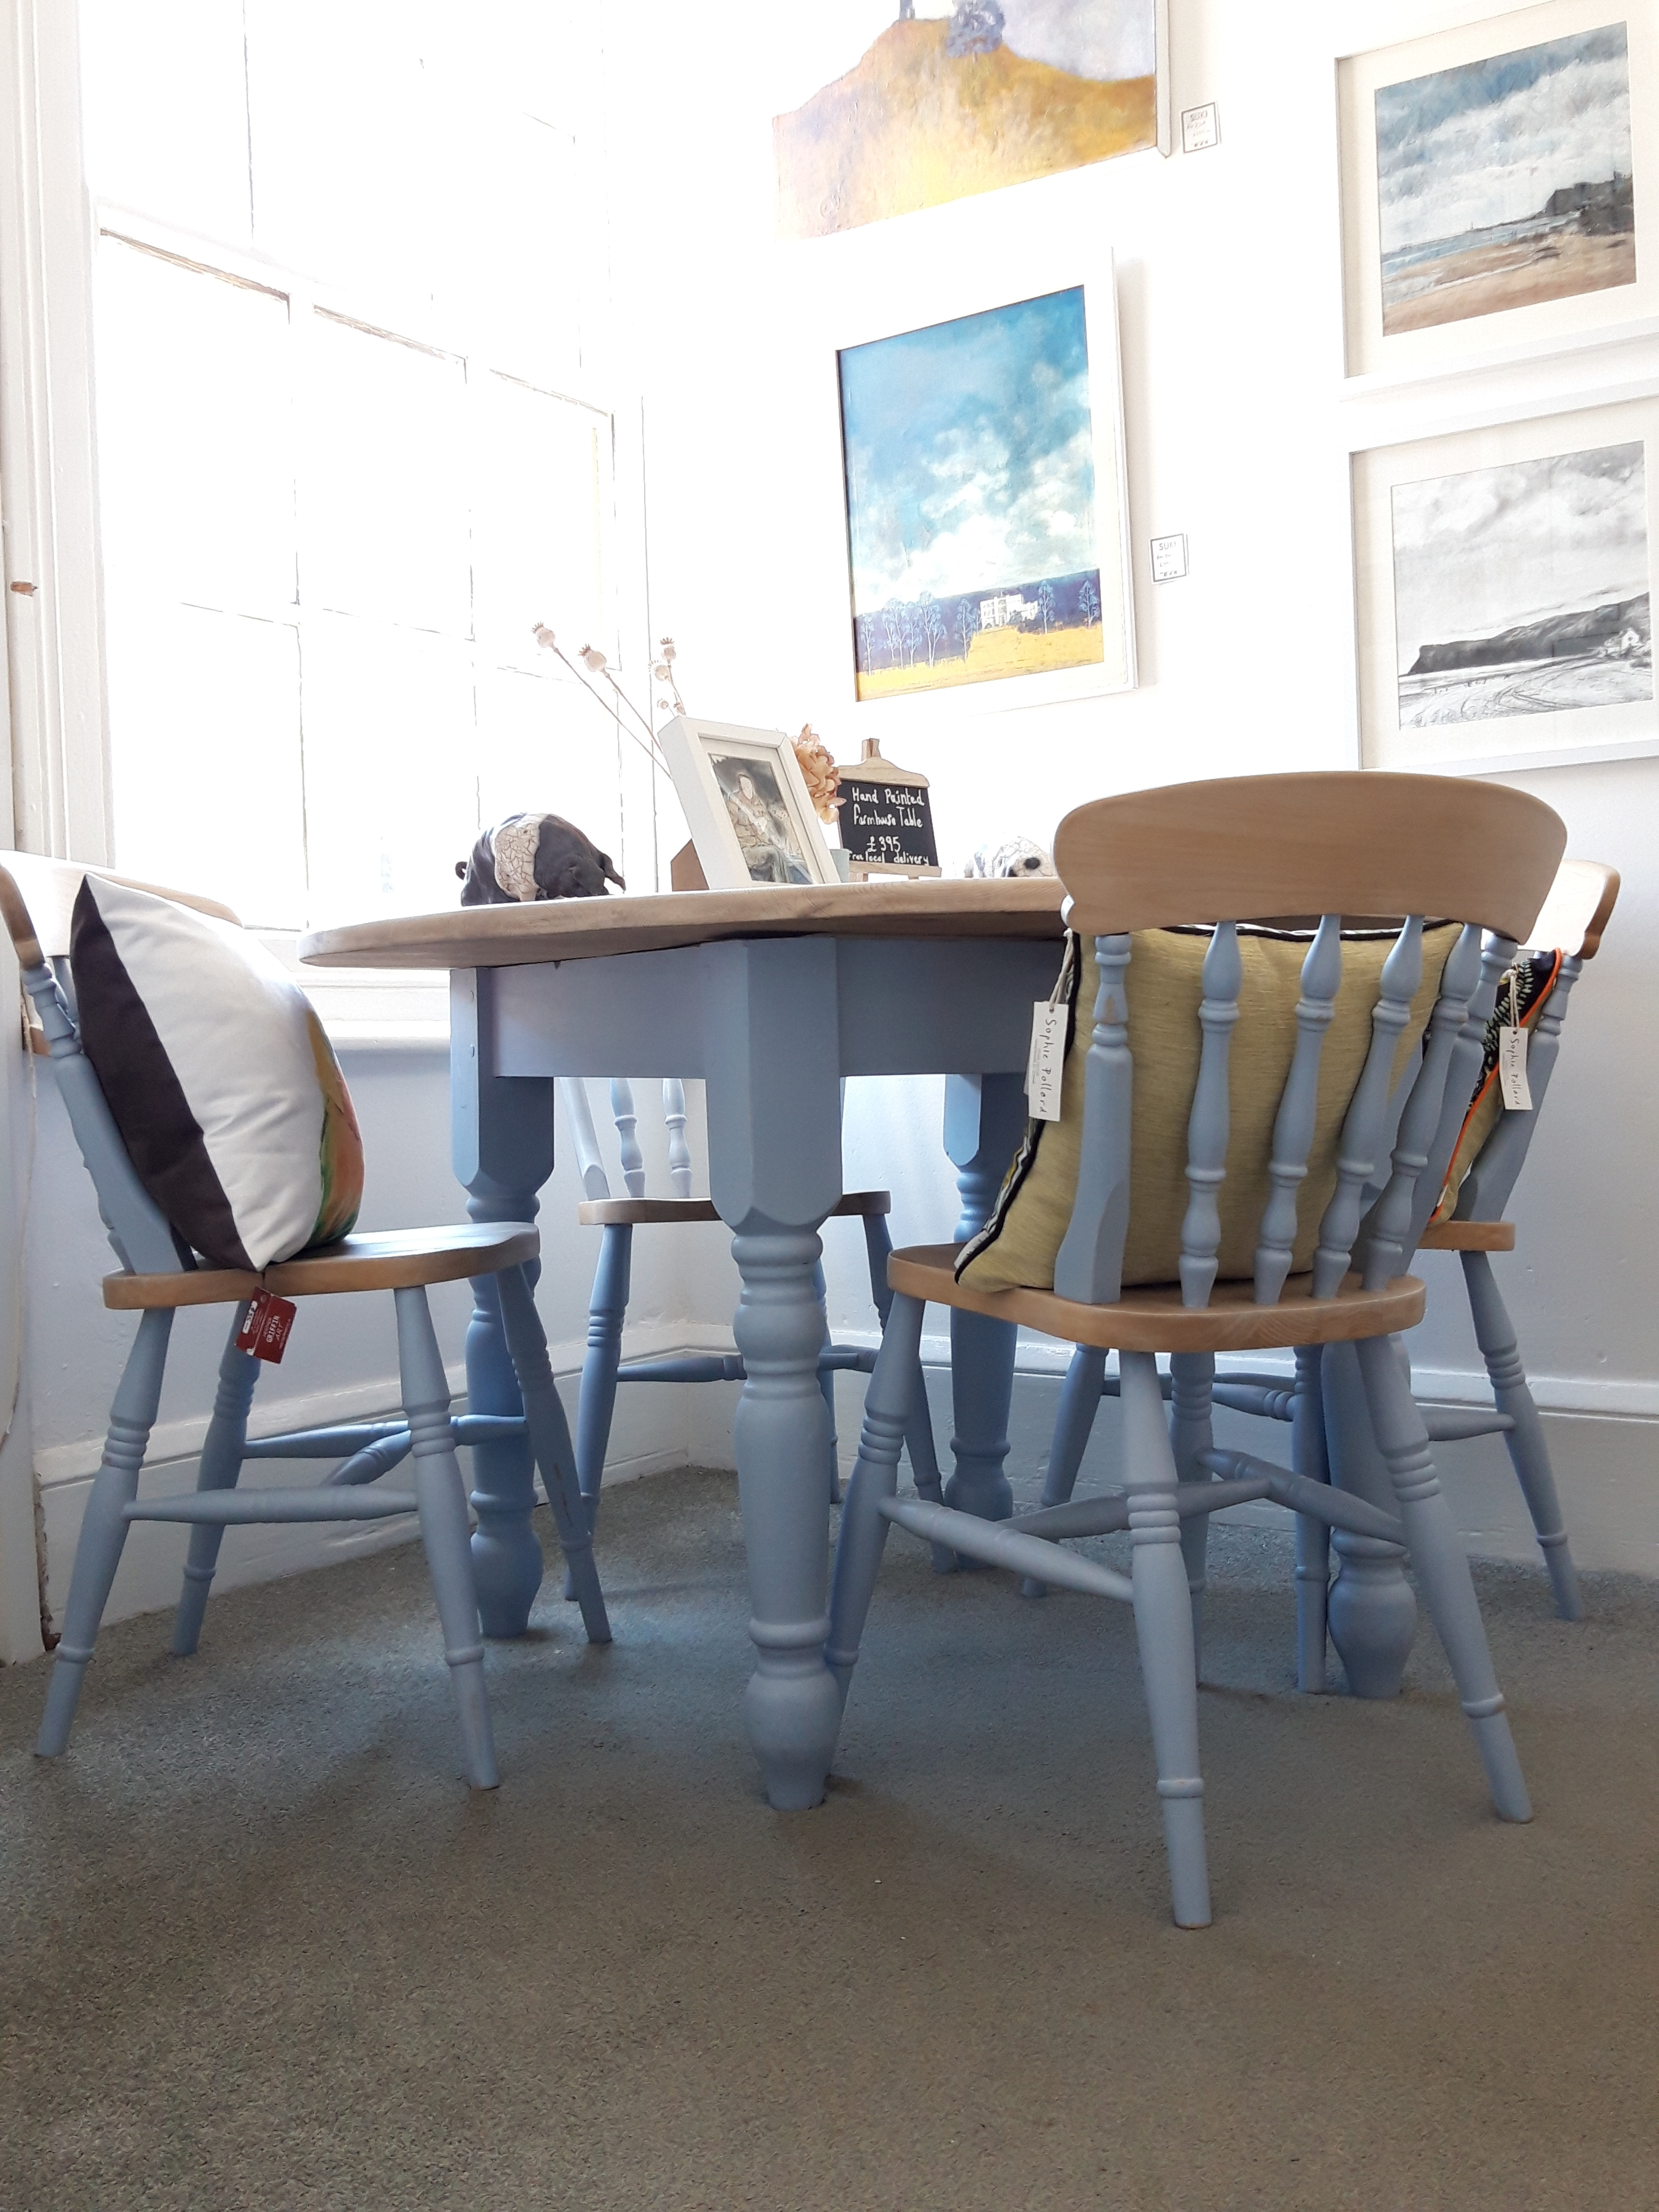 Farmhouse Style Hand Painted Round Pine Dining Table & 4 Chairs Soft Blue  Grey Modern Look Rustic Kitchen Or New Home